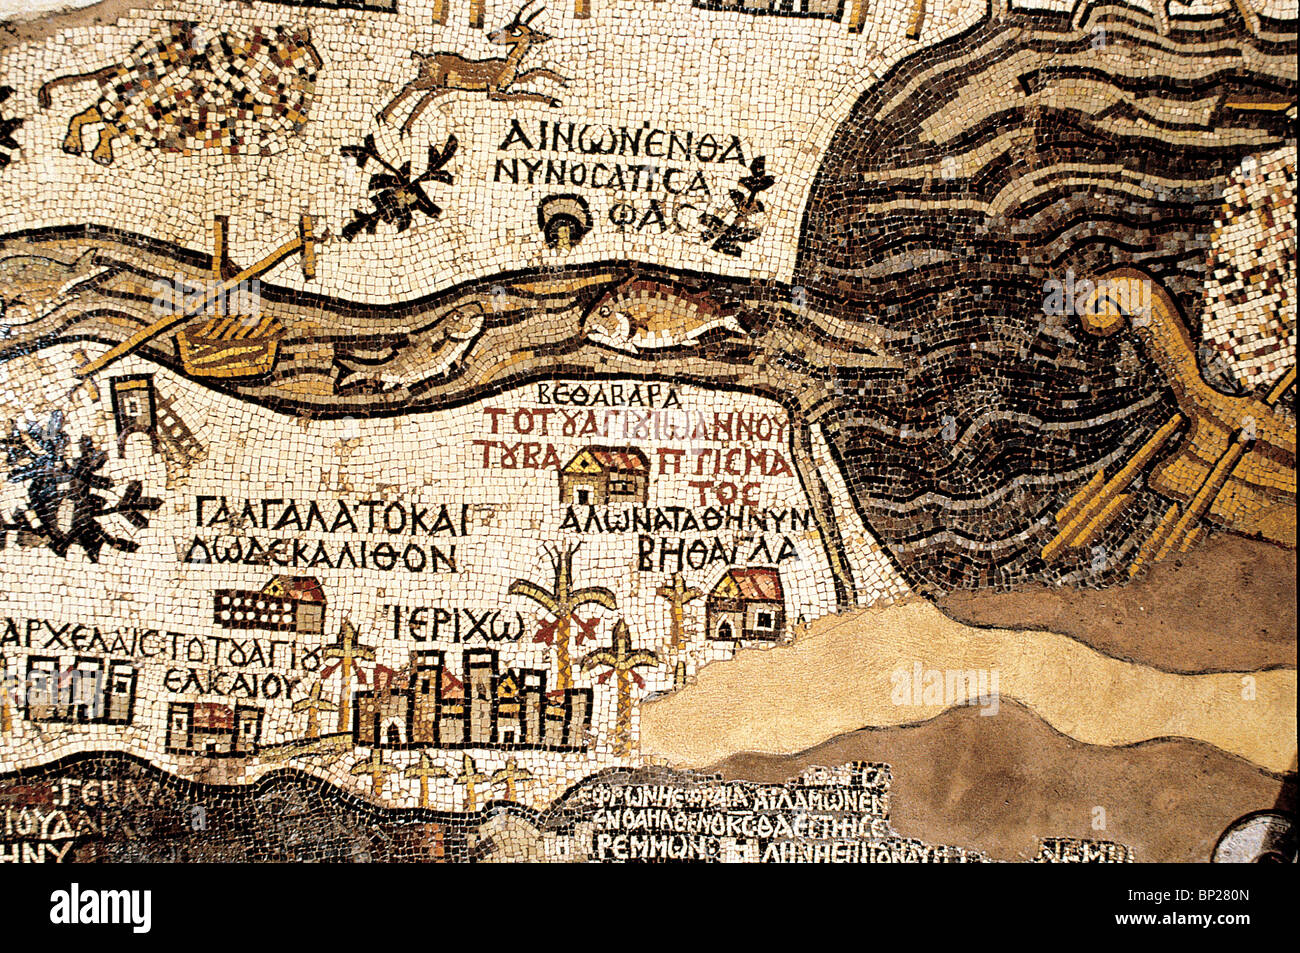 DETAIL OF THE MOSAIC FLOOR OF THE 5TH. C. AD CHURCH AT MADABA (TRANS JORDAN), SHOWING DETAILED MAP OF THE CITY  - Stock Image